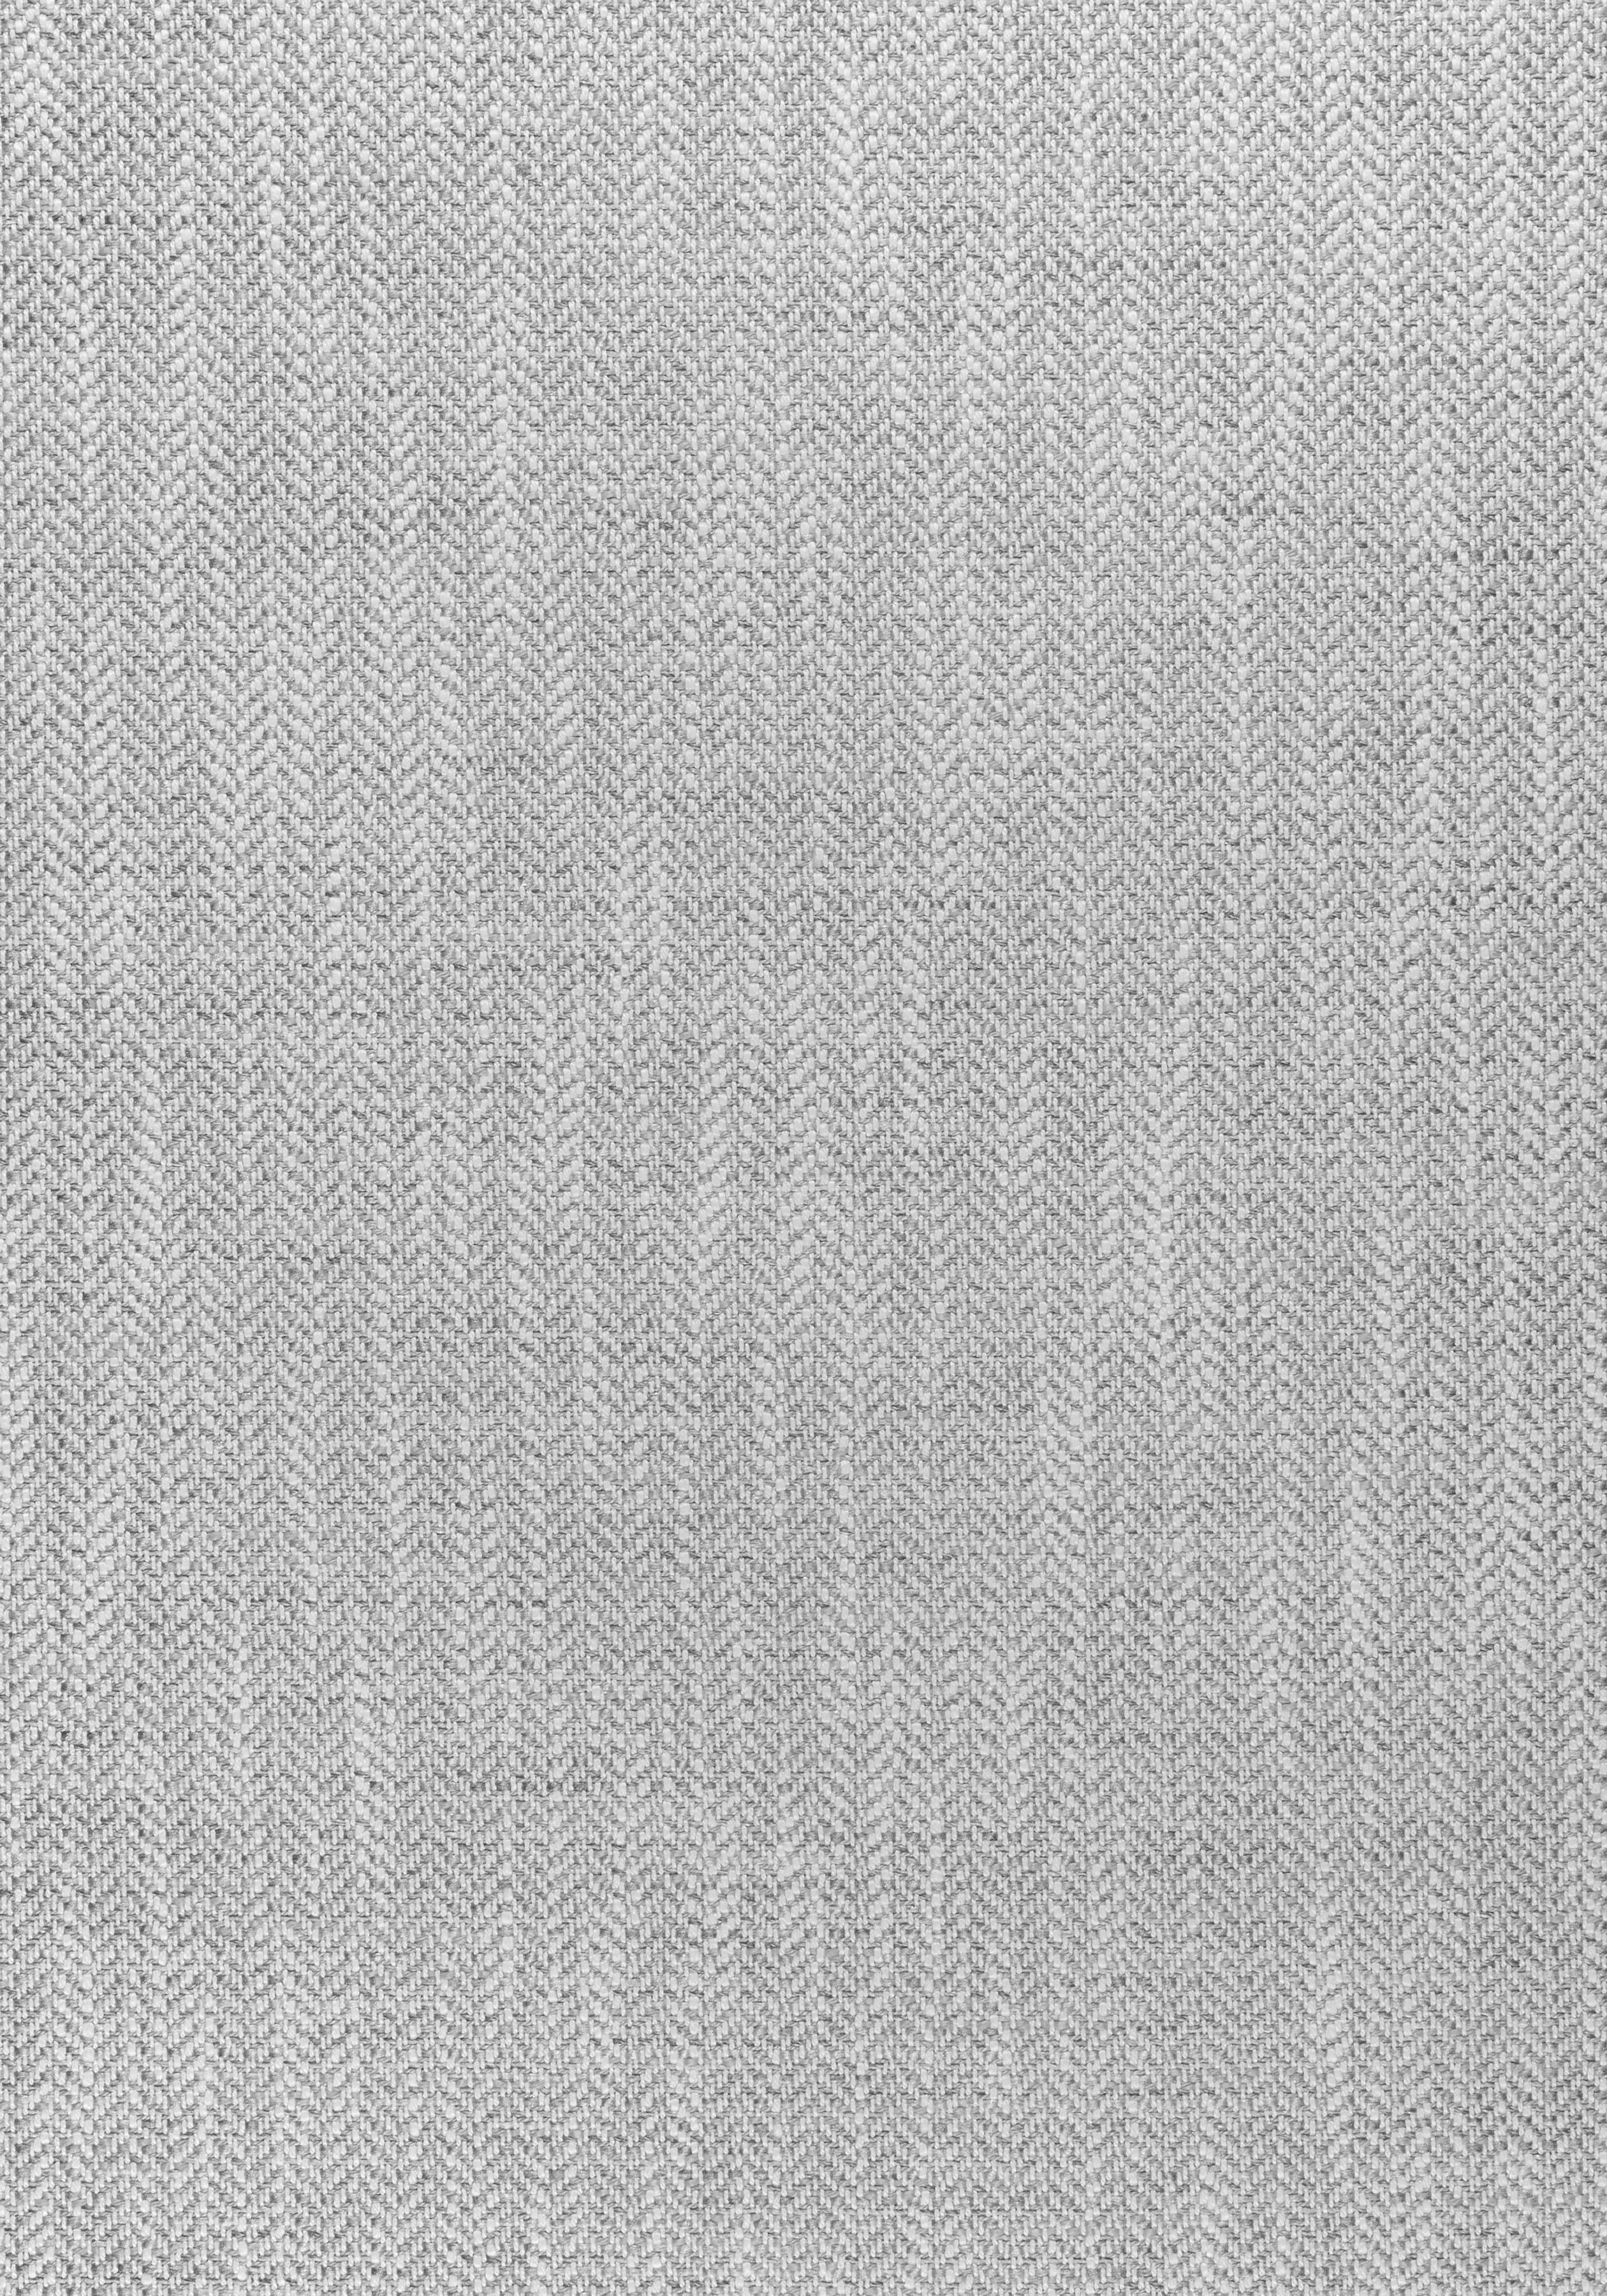 Ashbourne Tweed Sterling Grey W80606 Collection Pinnacle From Thibaut Fabric Textures Fabric Texture Seamless Grey Fabric Texture